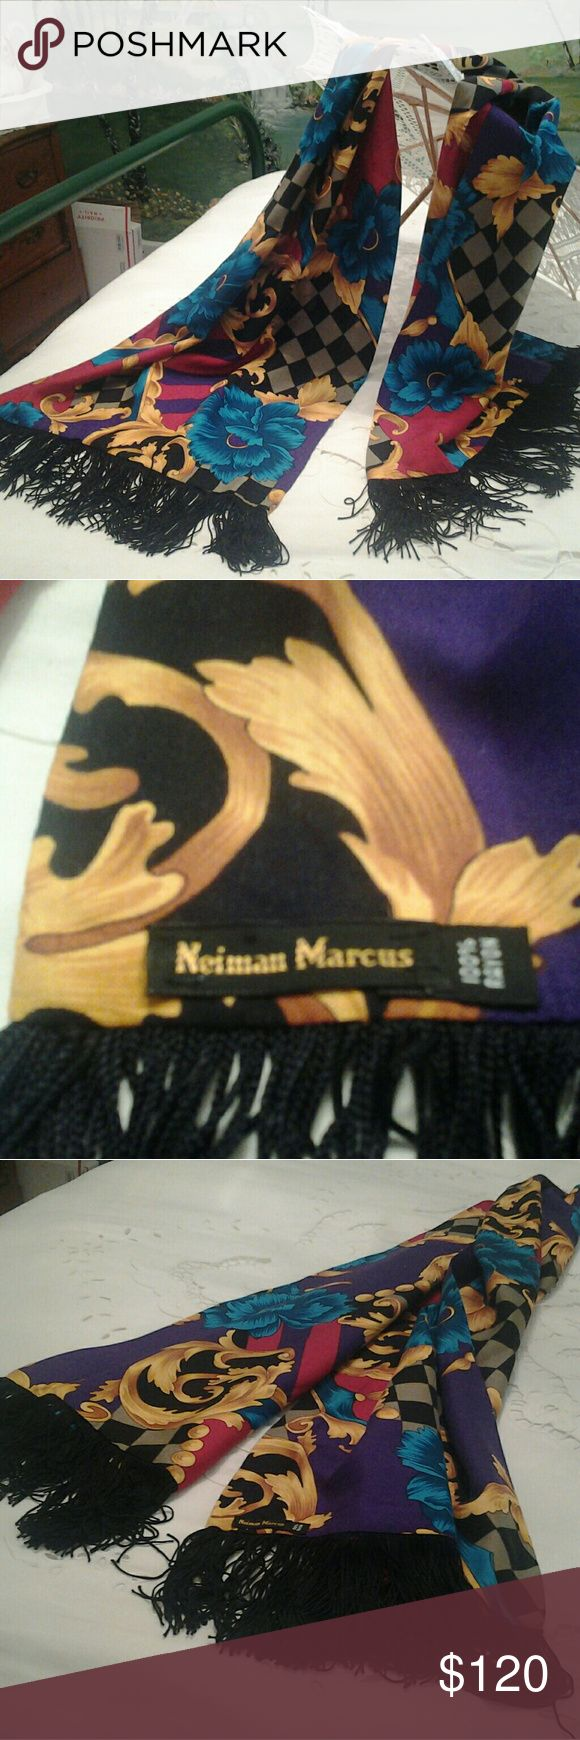 NEIMAN MARCUS BEAUTIFUL MULTI-COLORED SCARF I HAVE A VERY ELEGANT AND BEAUTIFUL NEIMAN MARCUS, 100 % RAYON MULTI-COLORED SCARF FOR SALE.   IT IS IN EXCELLANT CONDITION, LOOKS LIKE NEW.   IT COULD BE WORN BY MALE OR FEMALE.  THE COLORS ARE VERY VIBRANT, RED, PURPLE, BLACK, GREY , BLUES  WITH GOLD LEAF DESIGNS.     THE MEASUREMENTS ARE 15 INCHES WIDE AND 58 INCHES LONG, IT HAS BLACK FRINGE  THAT IS 3 1/2 INCHES LONG.  IF YOU HAVE ANY QUESTIONS ABOUT THIS BEAUTIFUL SCARF, PLEASE ASK. NEIMAN…